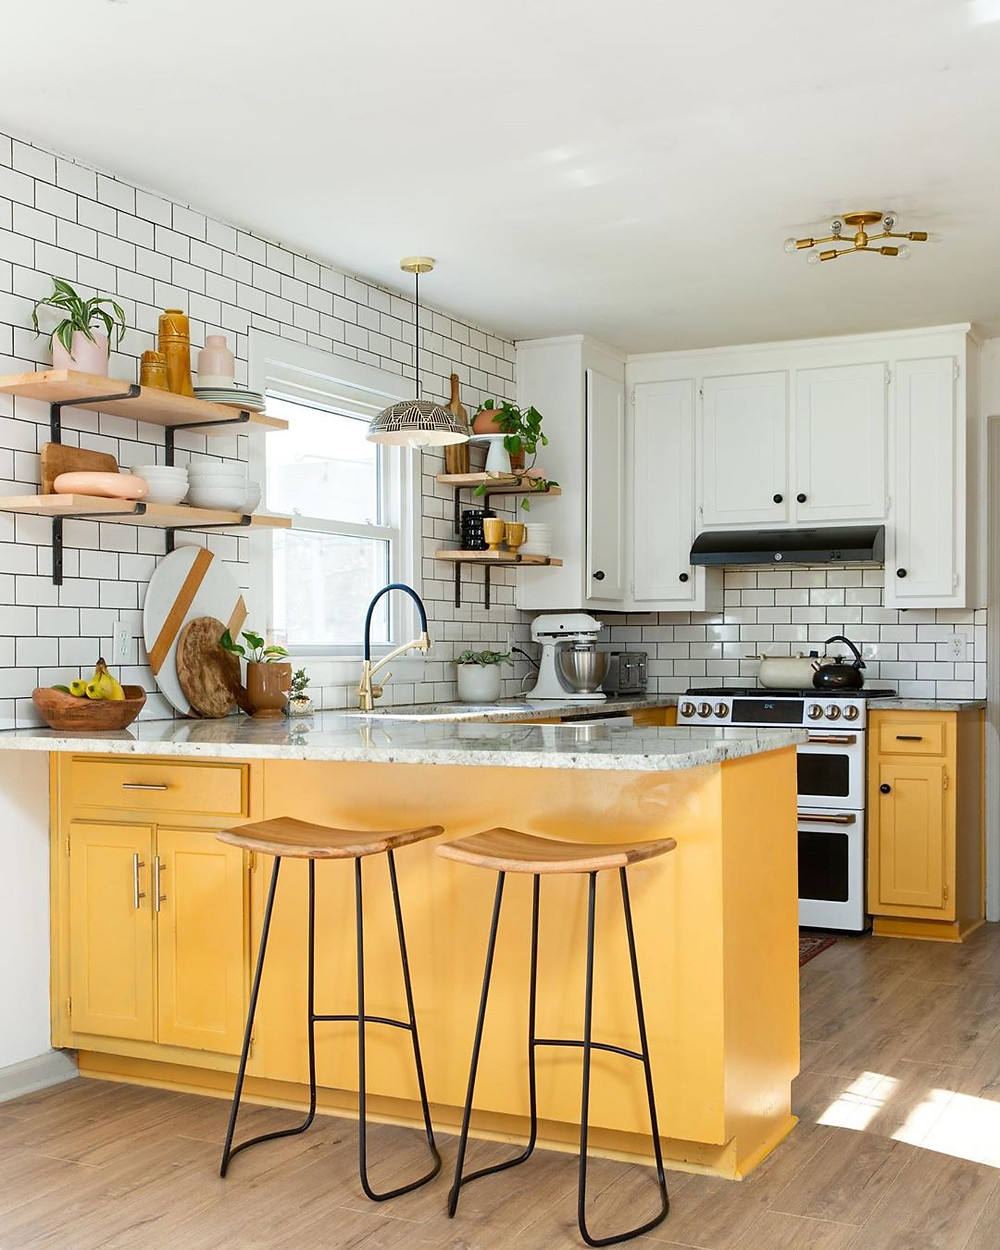 Nice kitchen decor with yellow cabinet colors and marble countertops and subway tiles